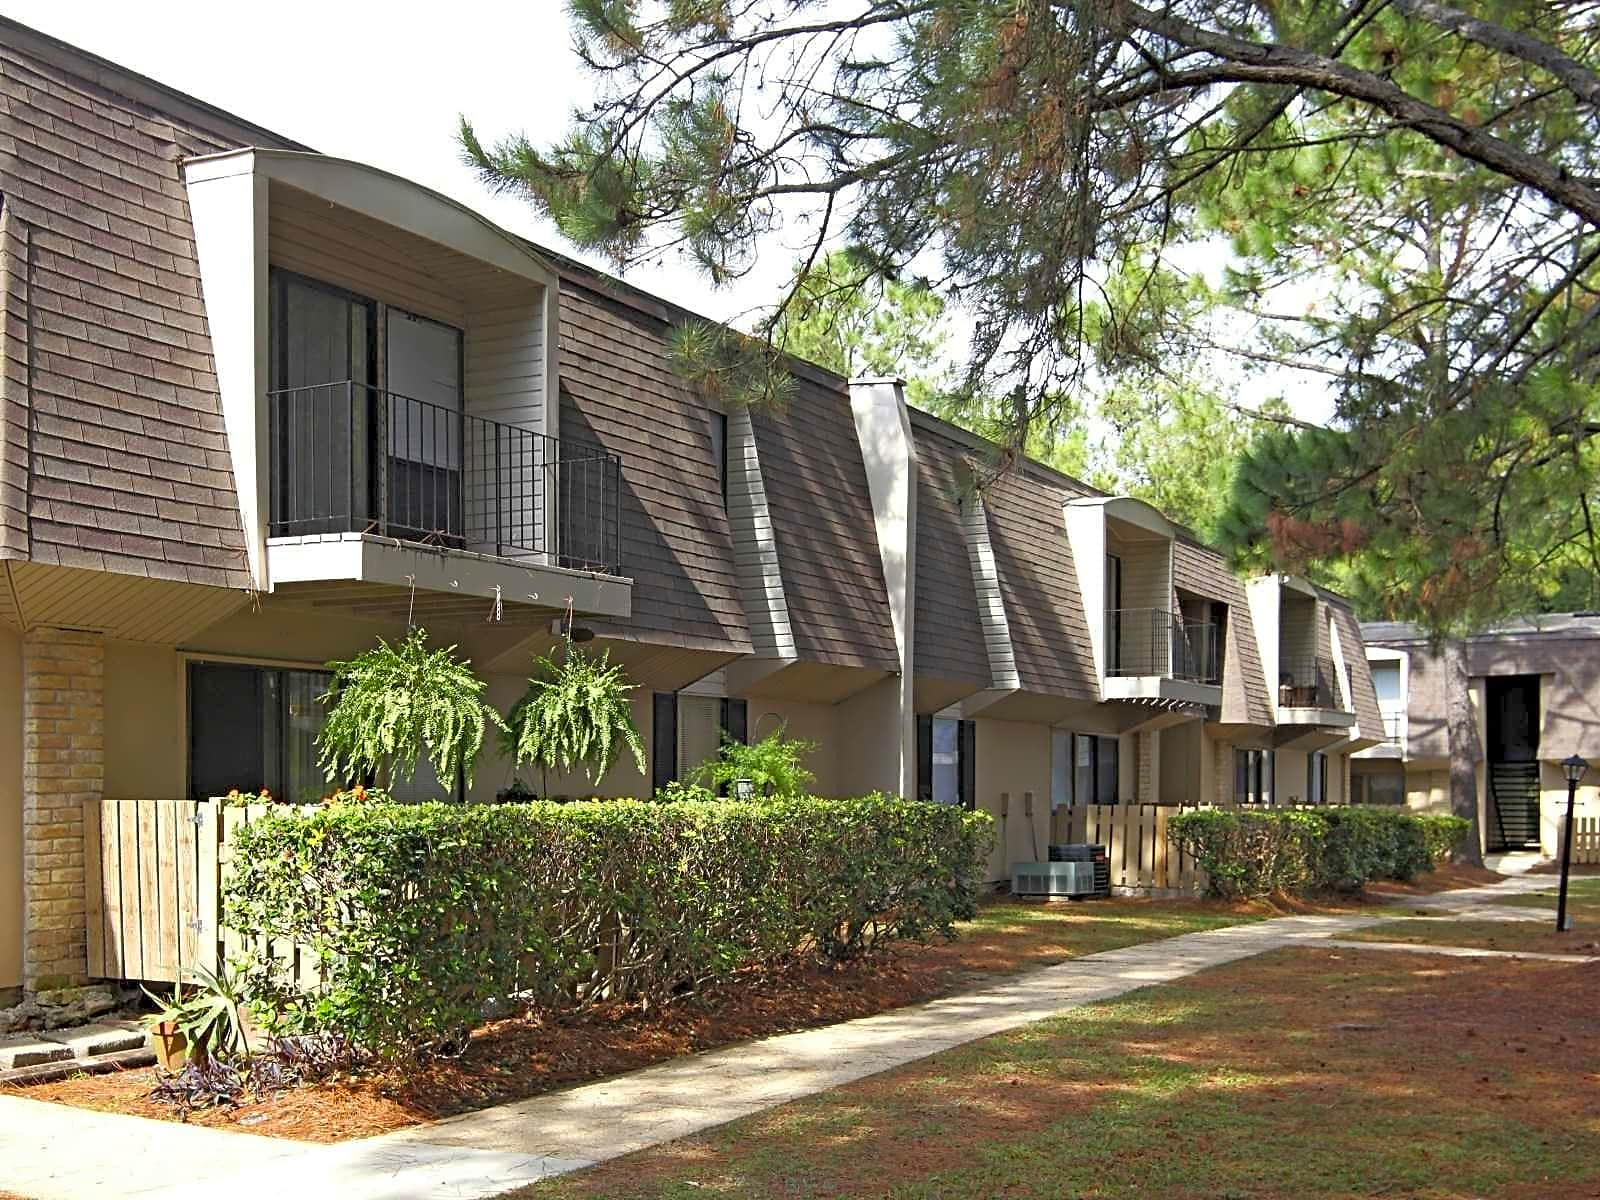 Apartments Near Spring Hill Maison De Ville for Spring Hill College Students in Mobile, AL